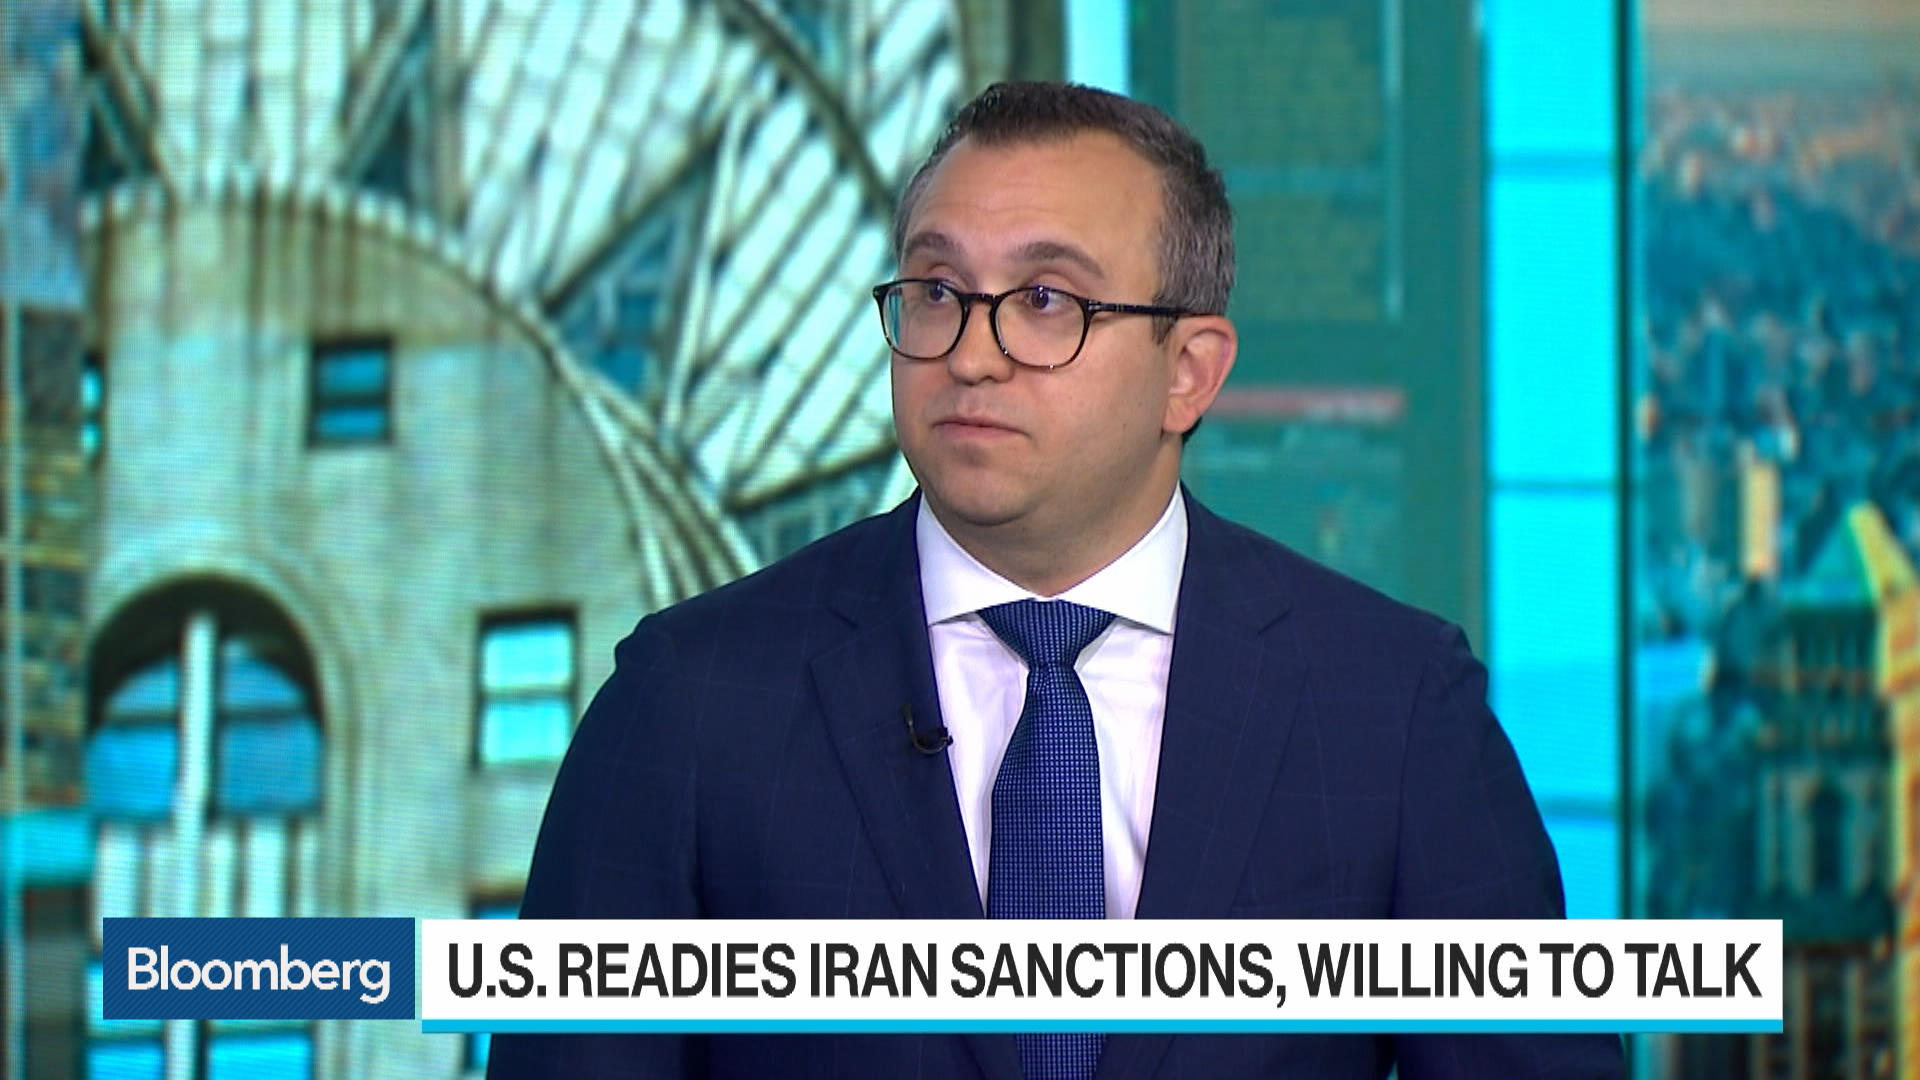 U.S. 'Running Out of Significant Things to Sanction' Iran, Says PwC's Tannebaum